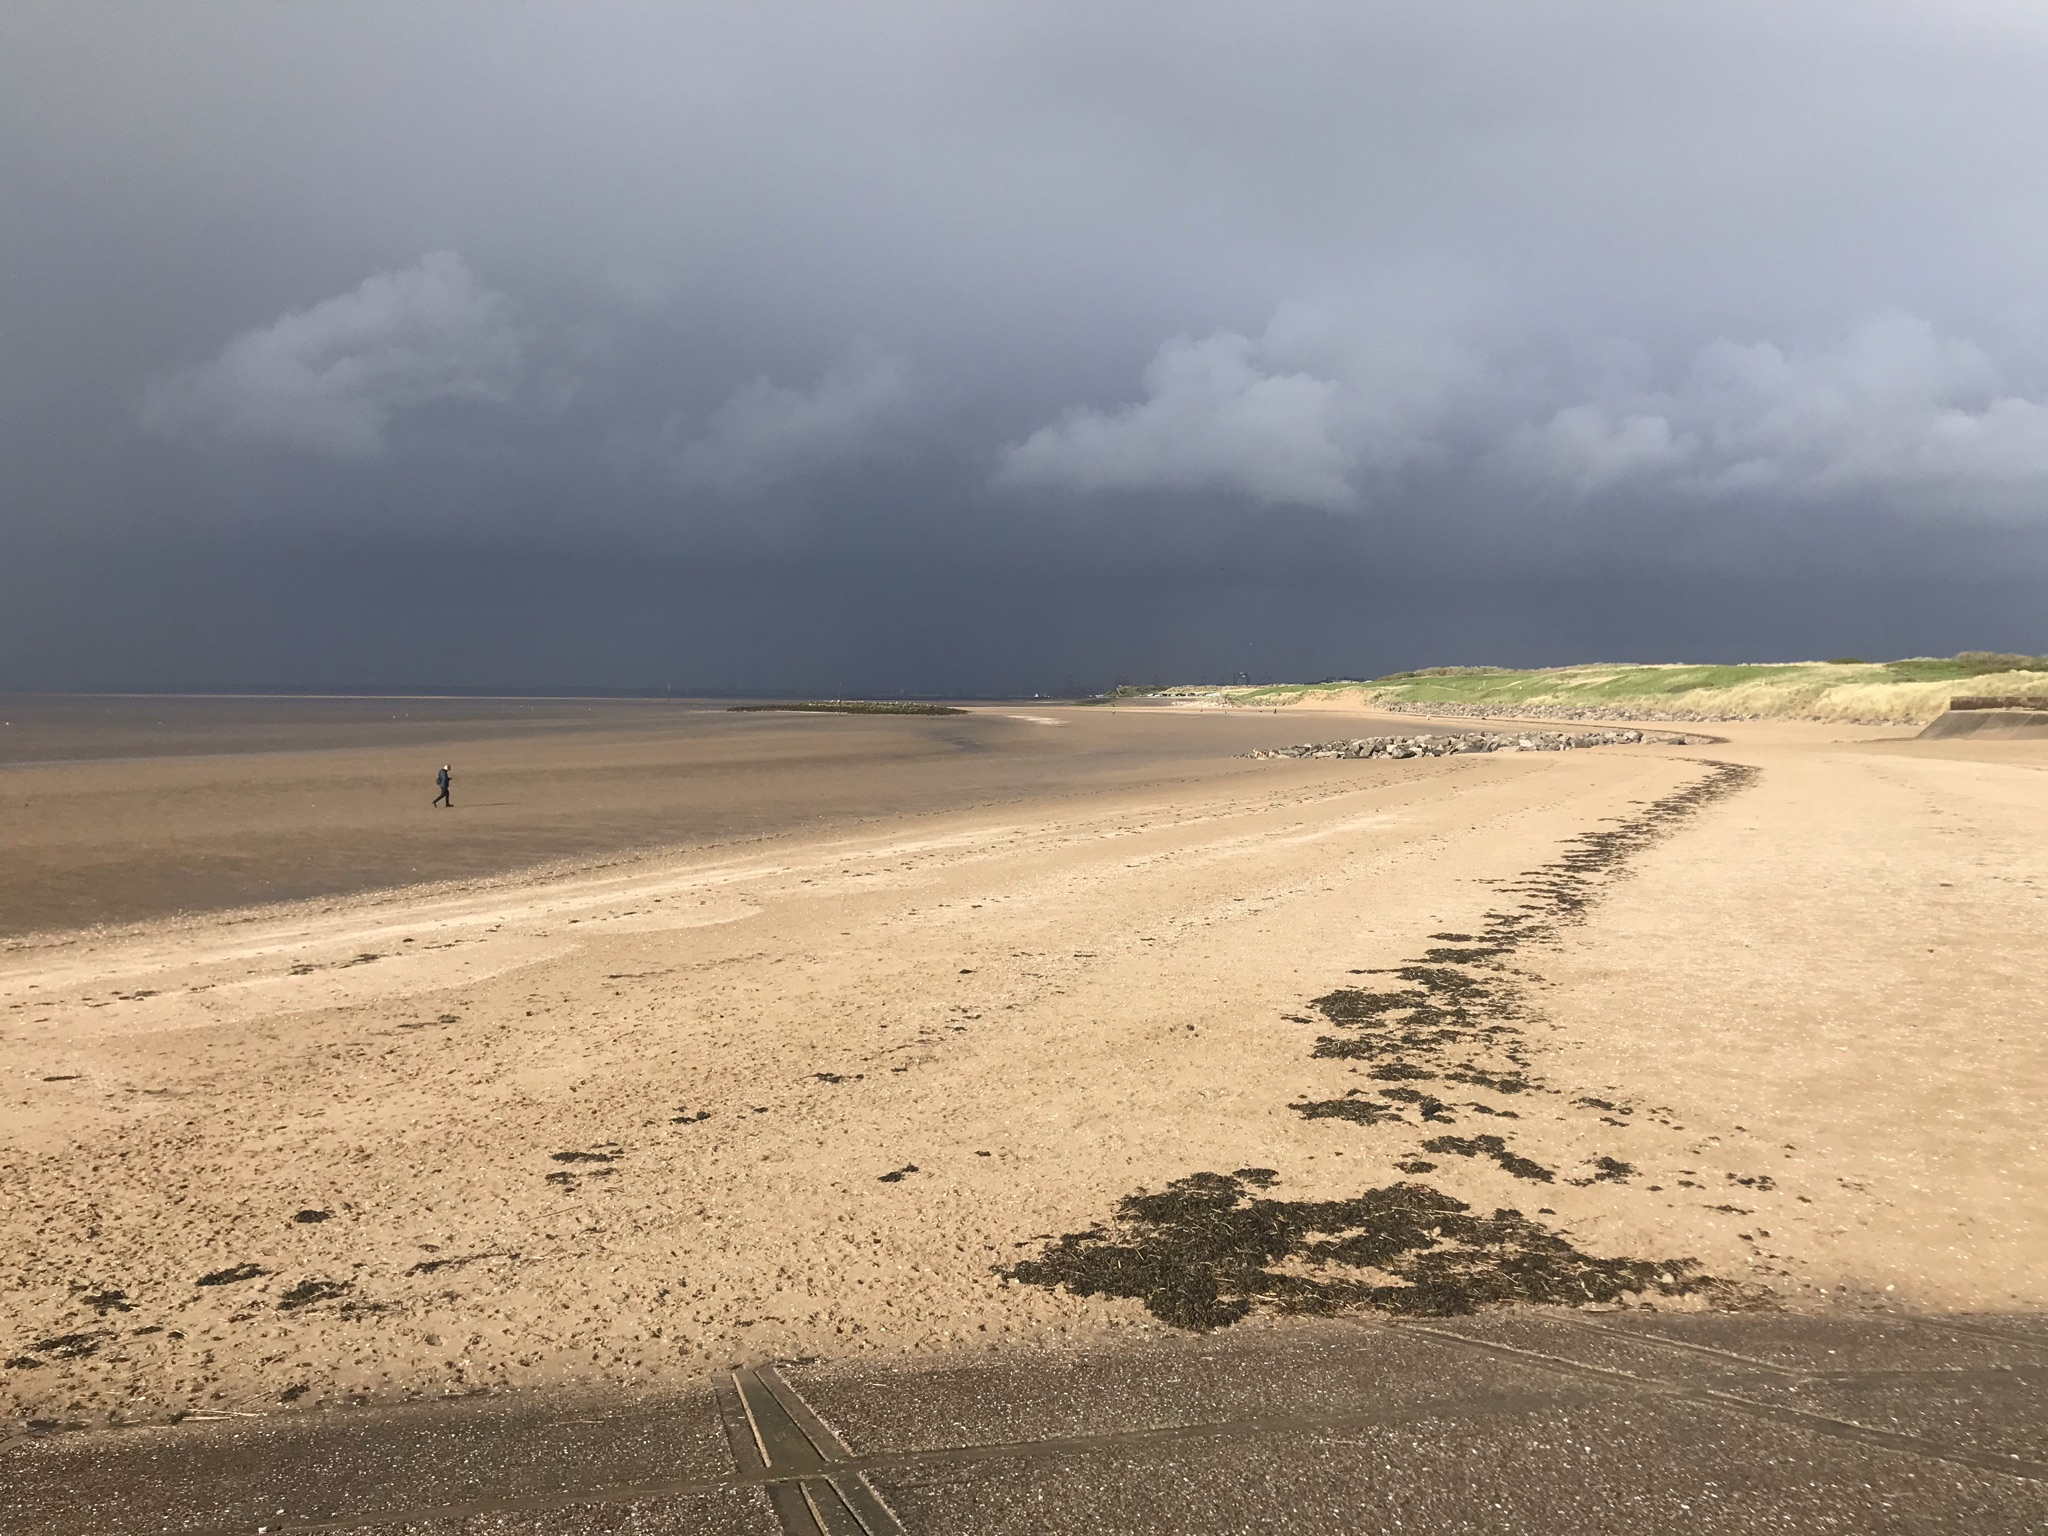 A wide sandy beach with a single person walking in the distance. The sky is dark with rain clouds